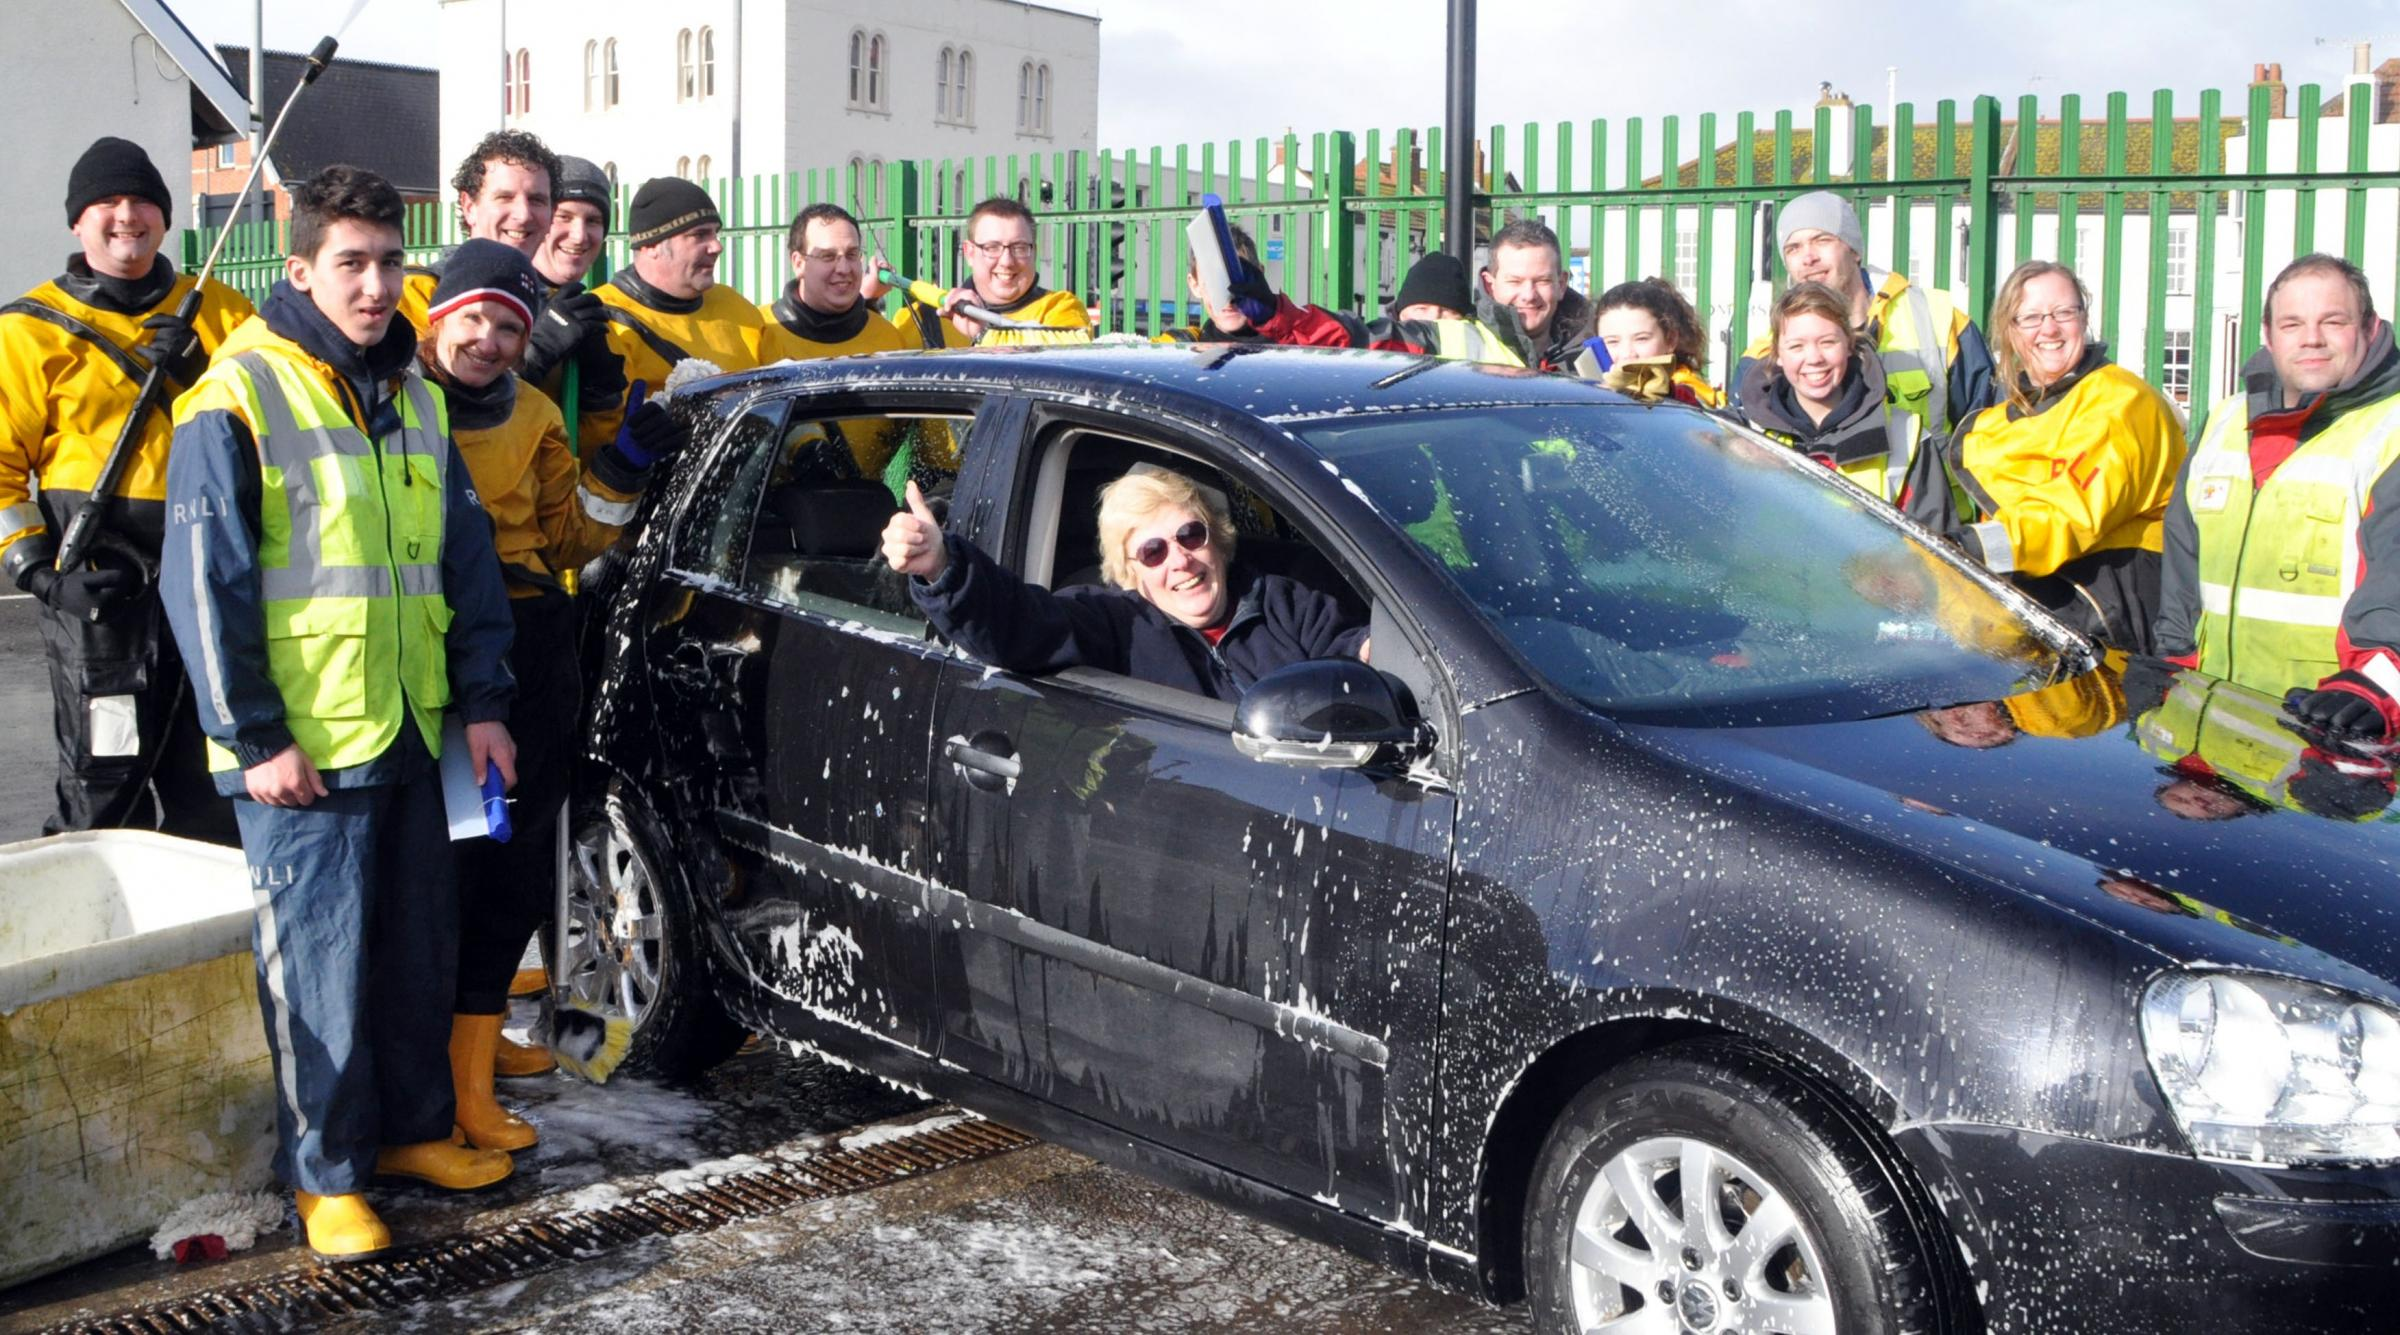 Cars shine in Burnham thanks to RNLI car wash